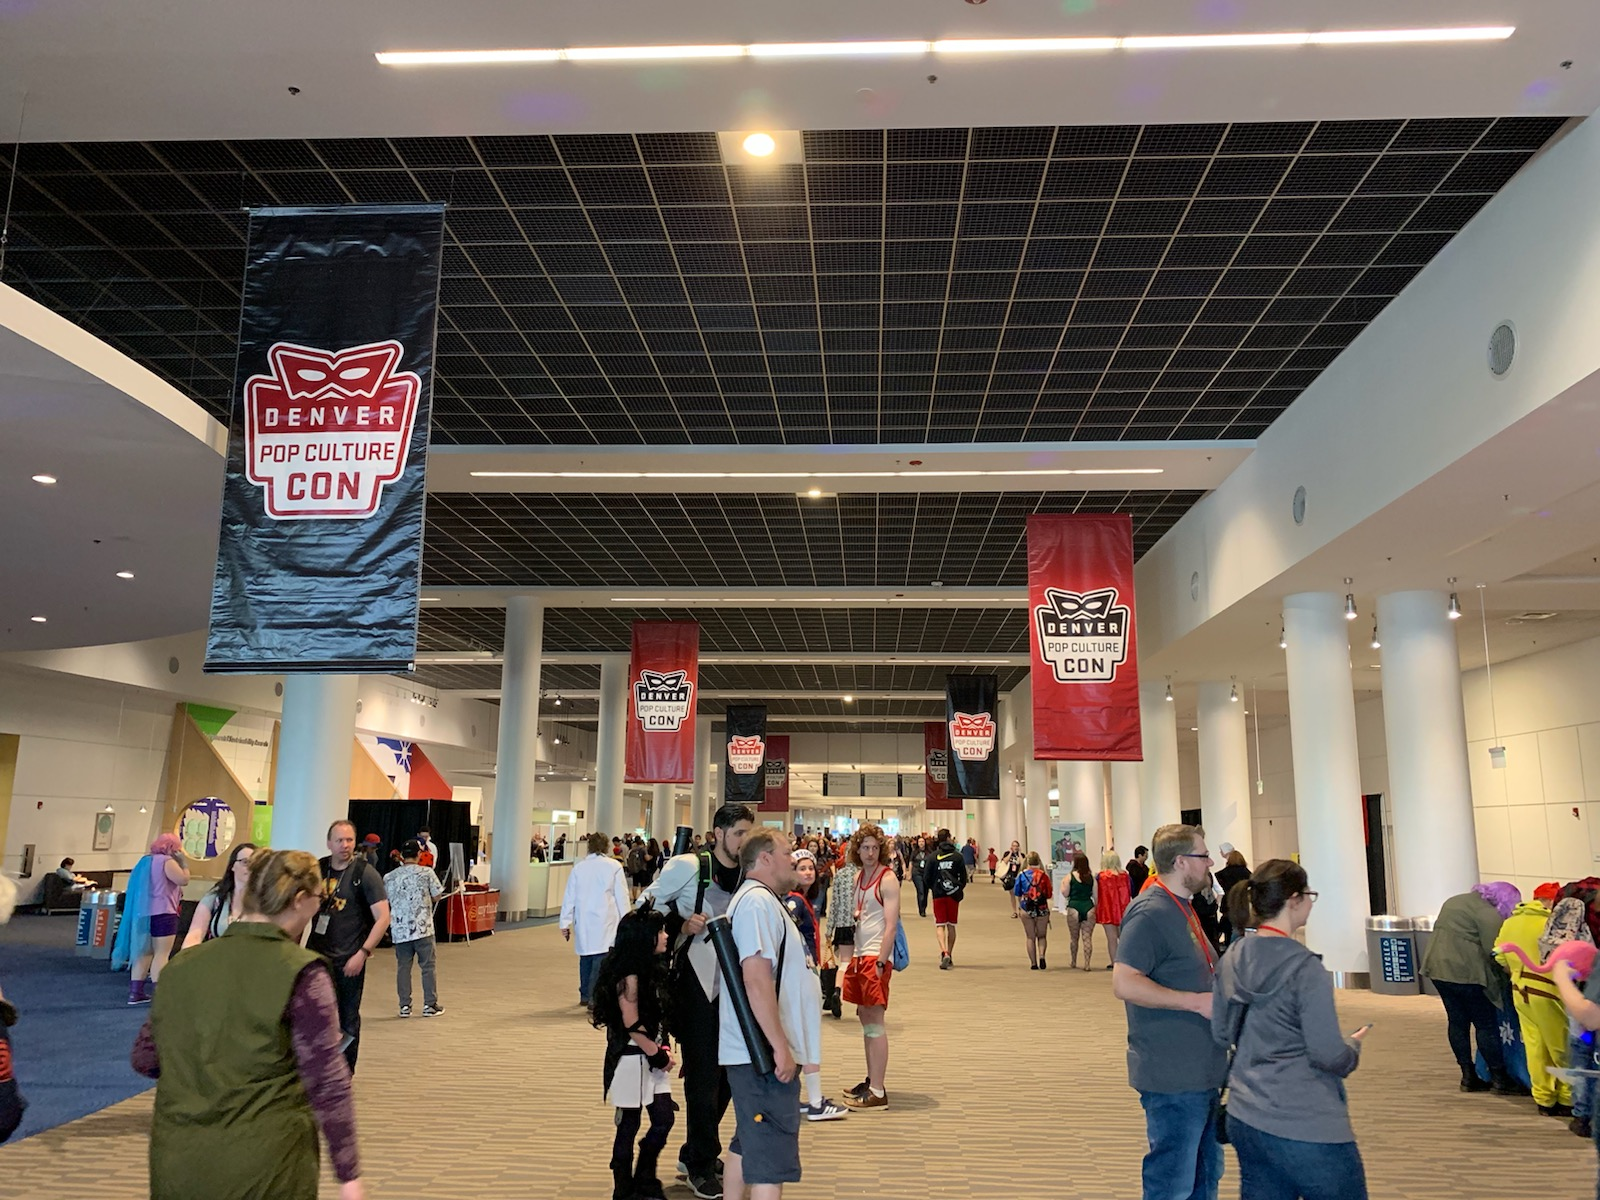 denver pop culture con banners